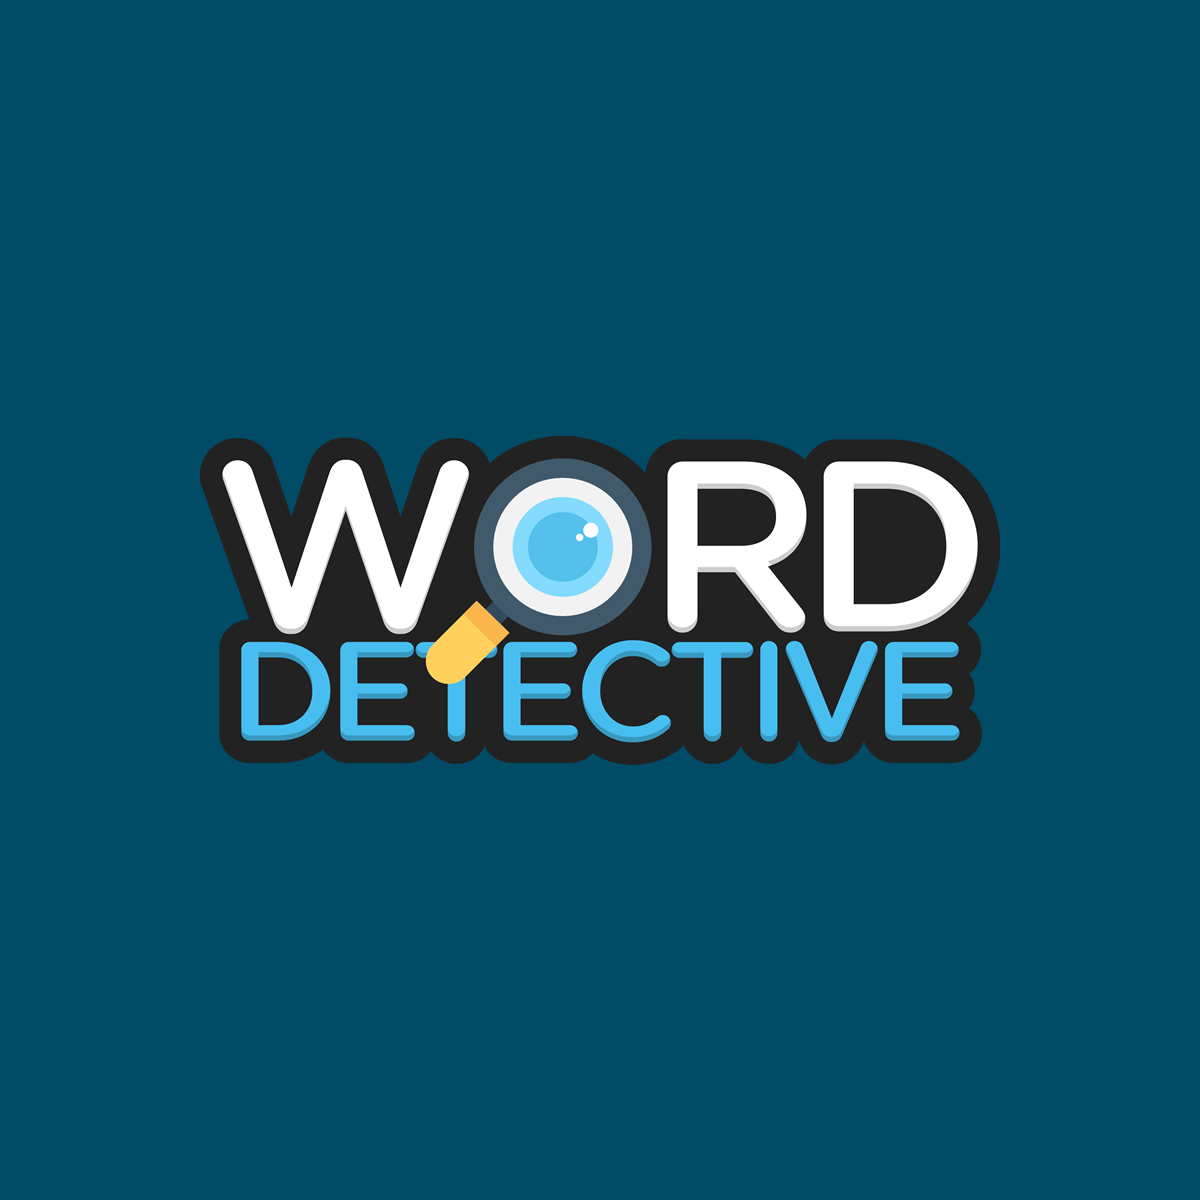 worddetective-logo-square.png